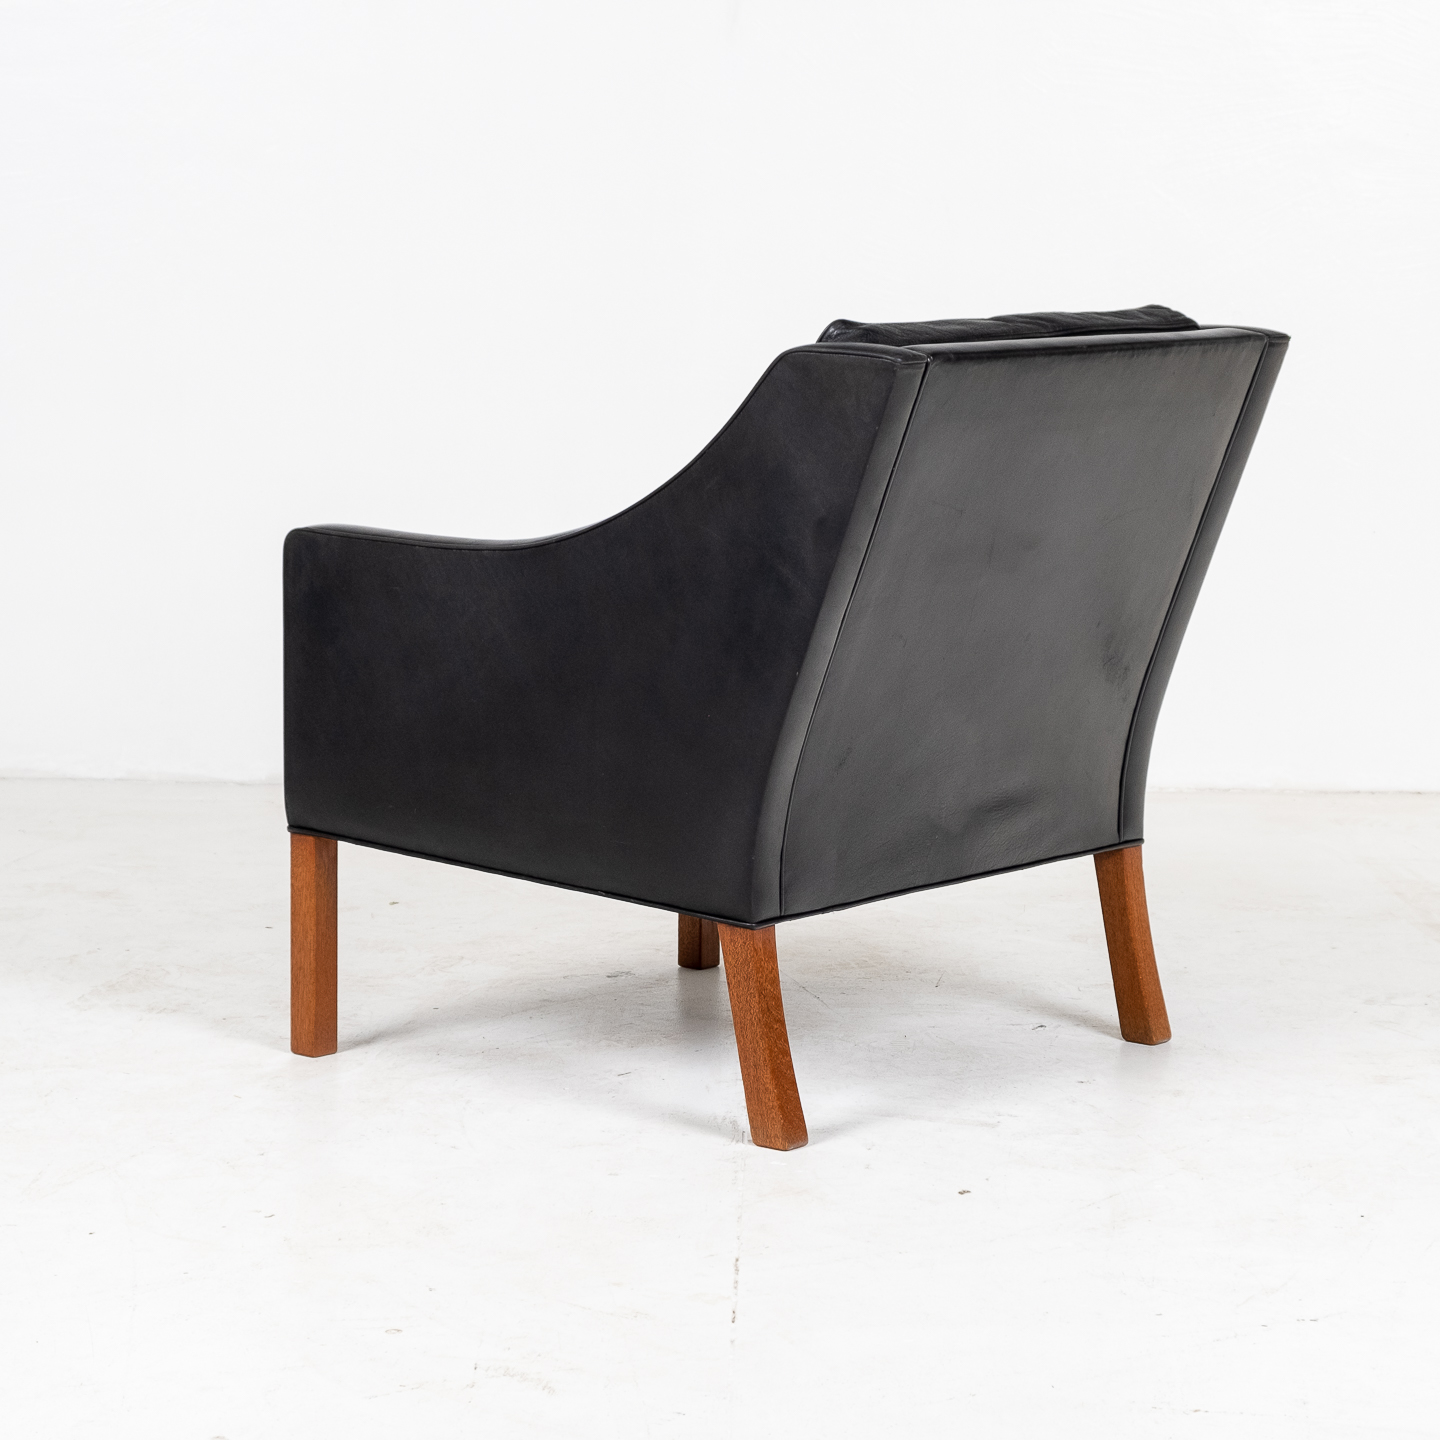 Model 2207 Armchair With Footstool Designed By Borge Mogensen For Fredericia Mobelfabrik In Black Leather, 1960s, Denmark 0000008